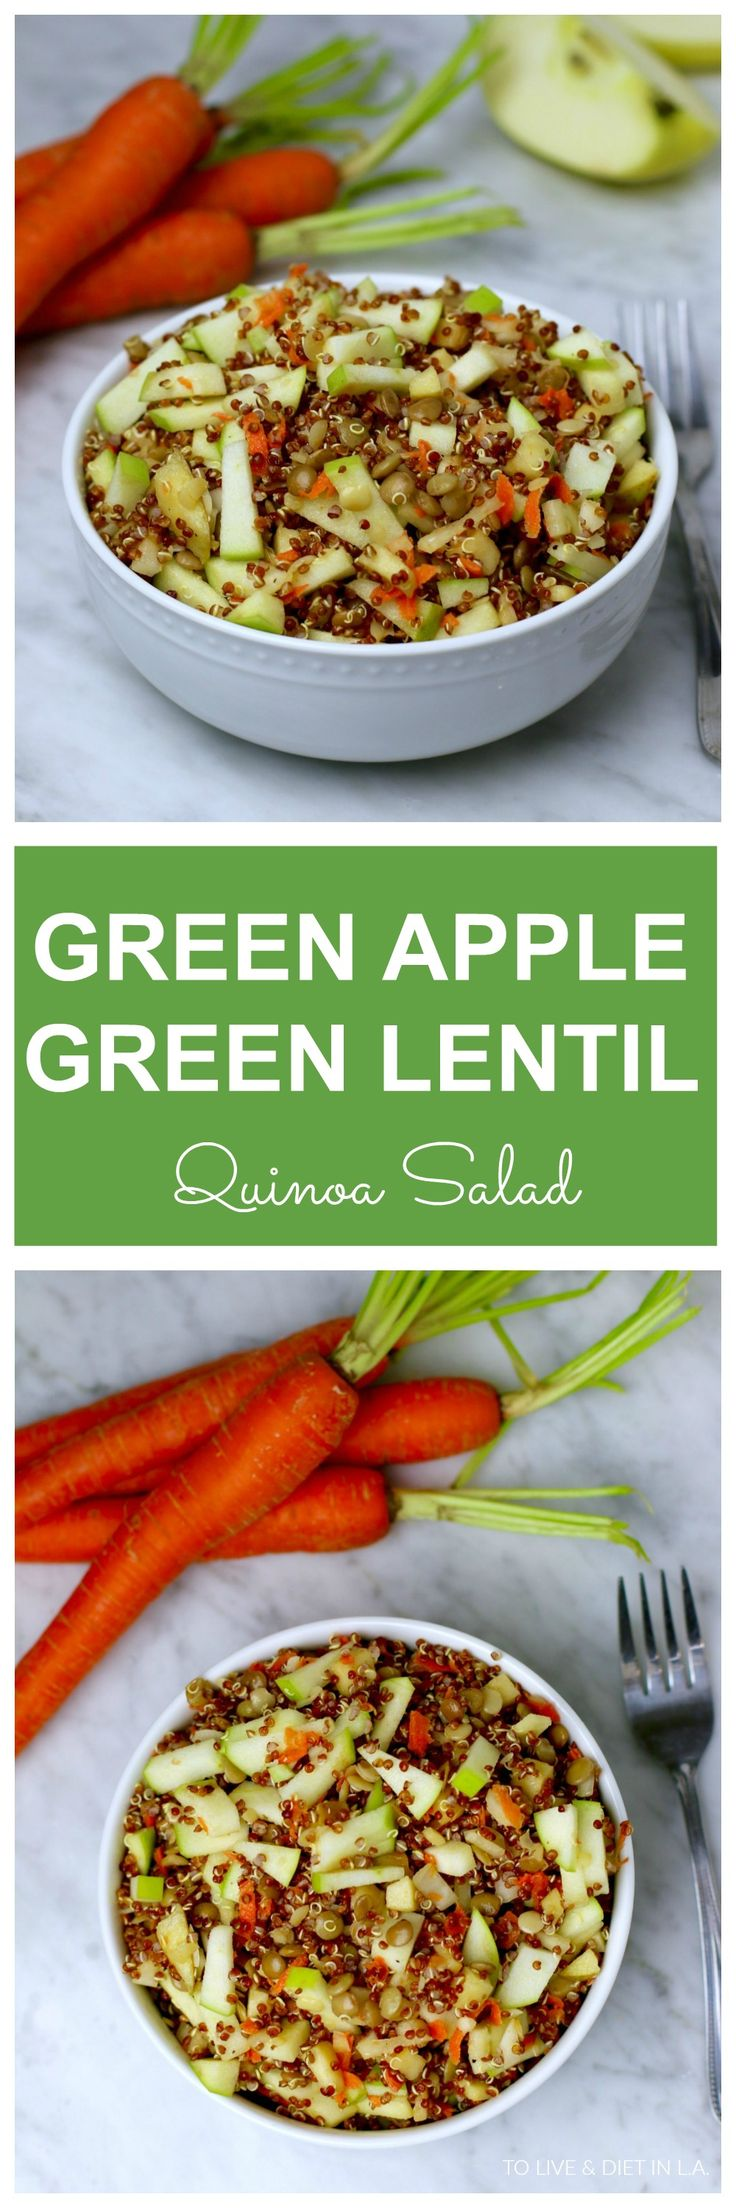 Green Apple Green Lentil Quinoa Salad - a healthy, easy, gluten-free and vegan side dish. The perfect summer salad for those BBQs and potlucks. Option to add feta cheese for vegetarians!